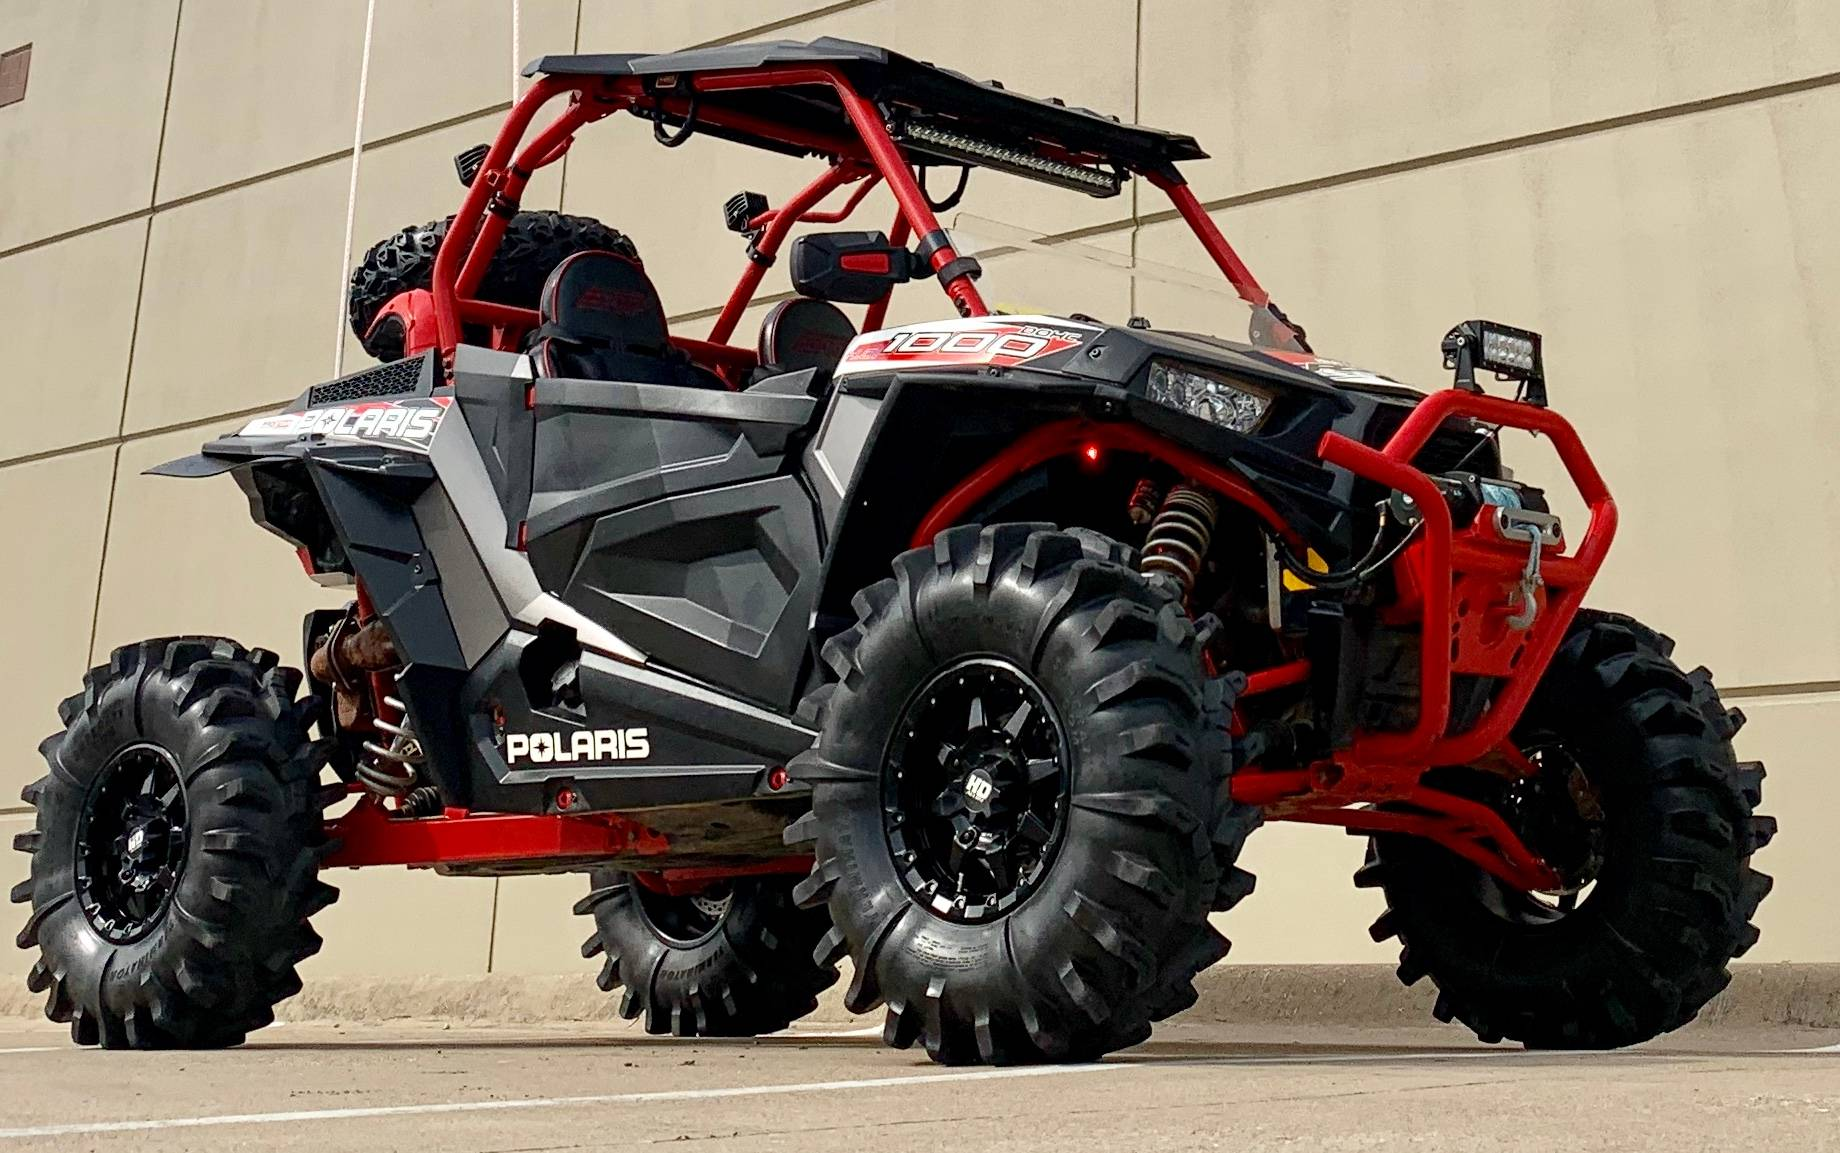 2016 Polaris Rzr Xp 1000 Eps High Lifter Edition In Plano Texas